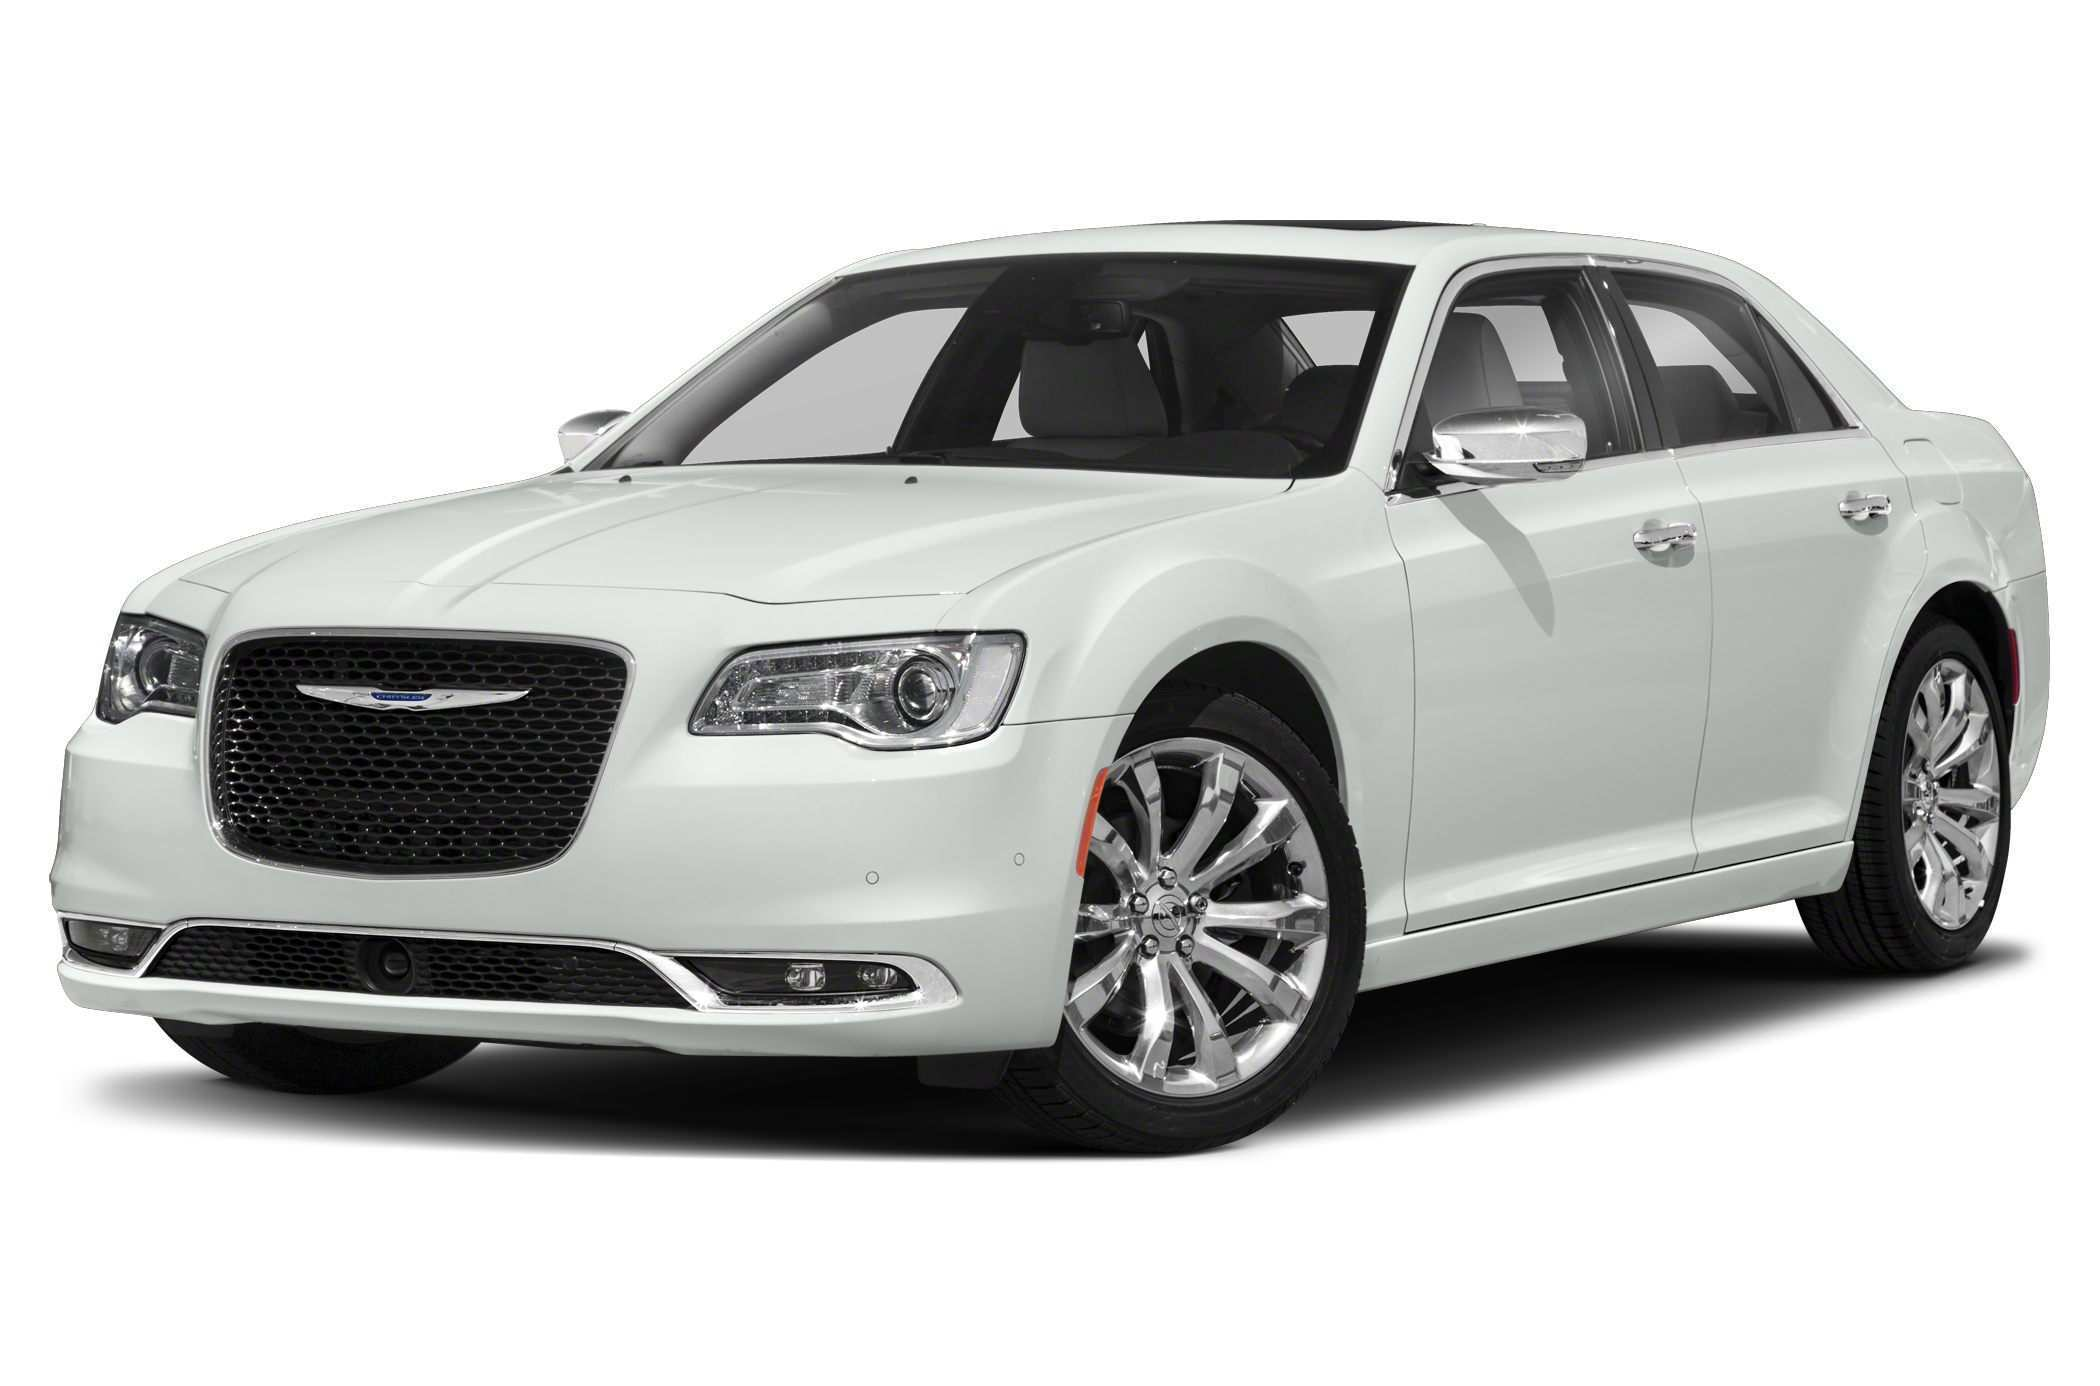 28 New 2019 Chrysler 300 Release Date Release